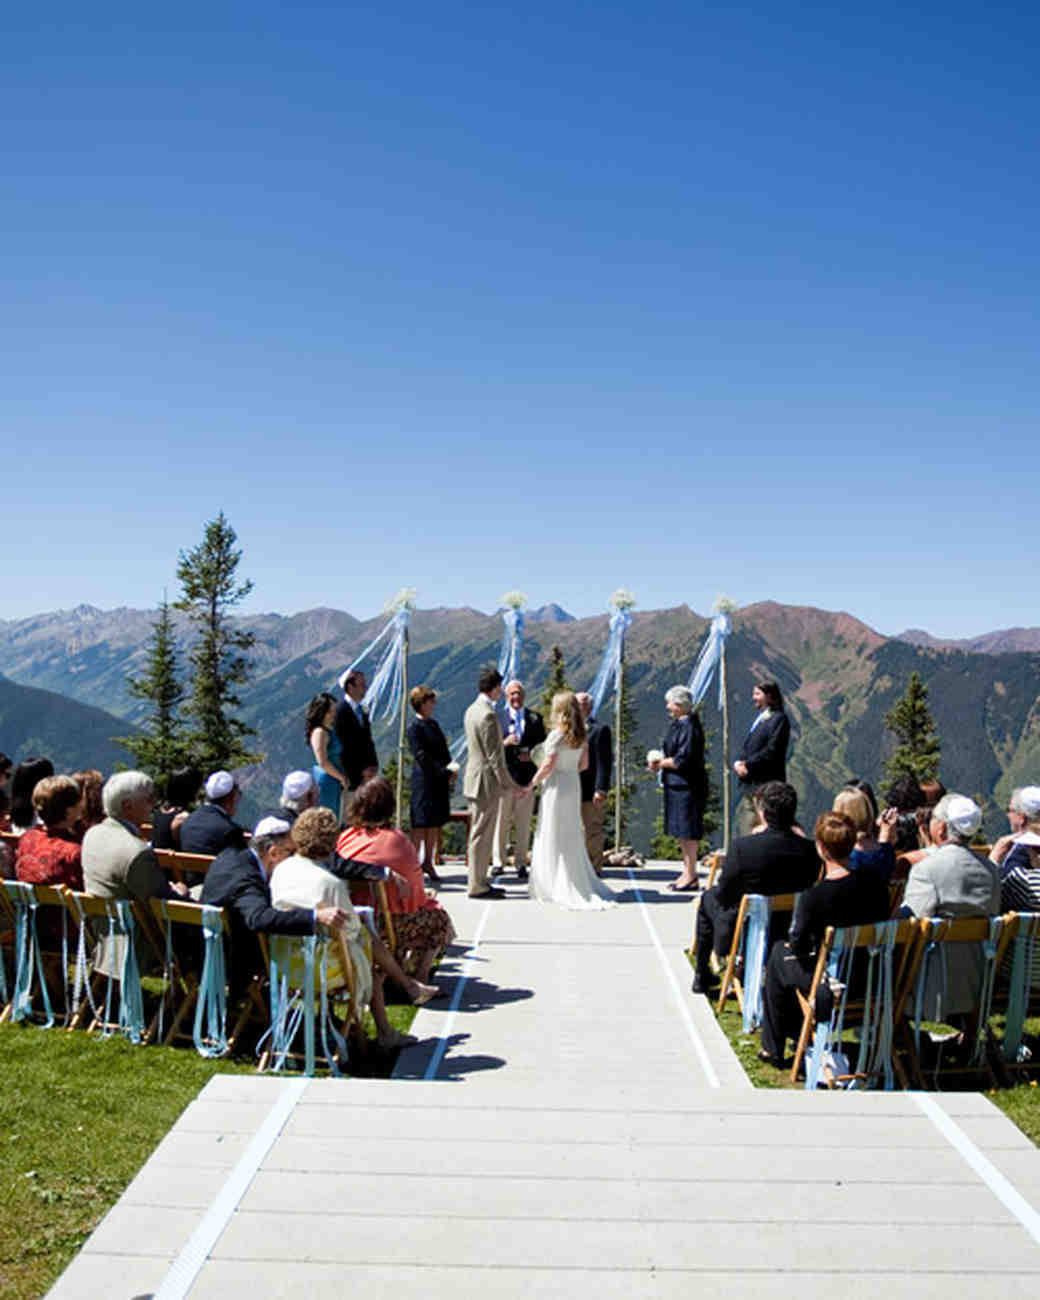 Best places for a destination wedding in the united states for East coast wedding destinations